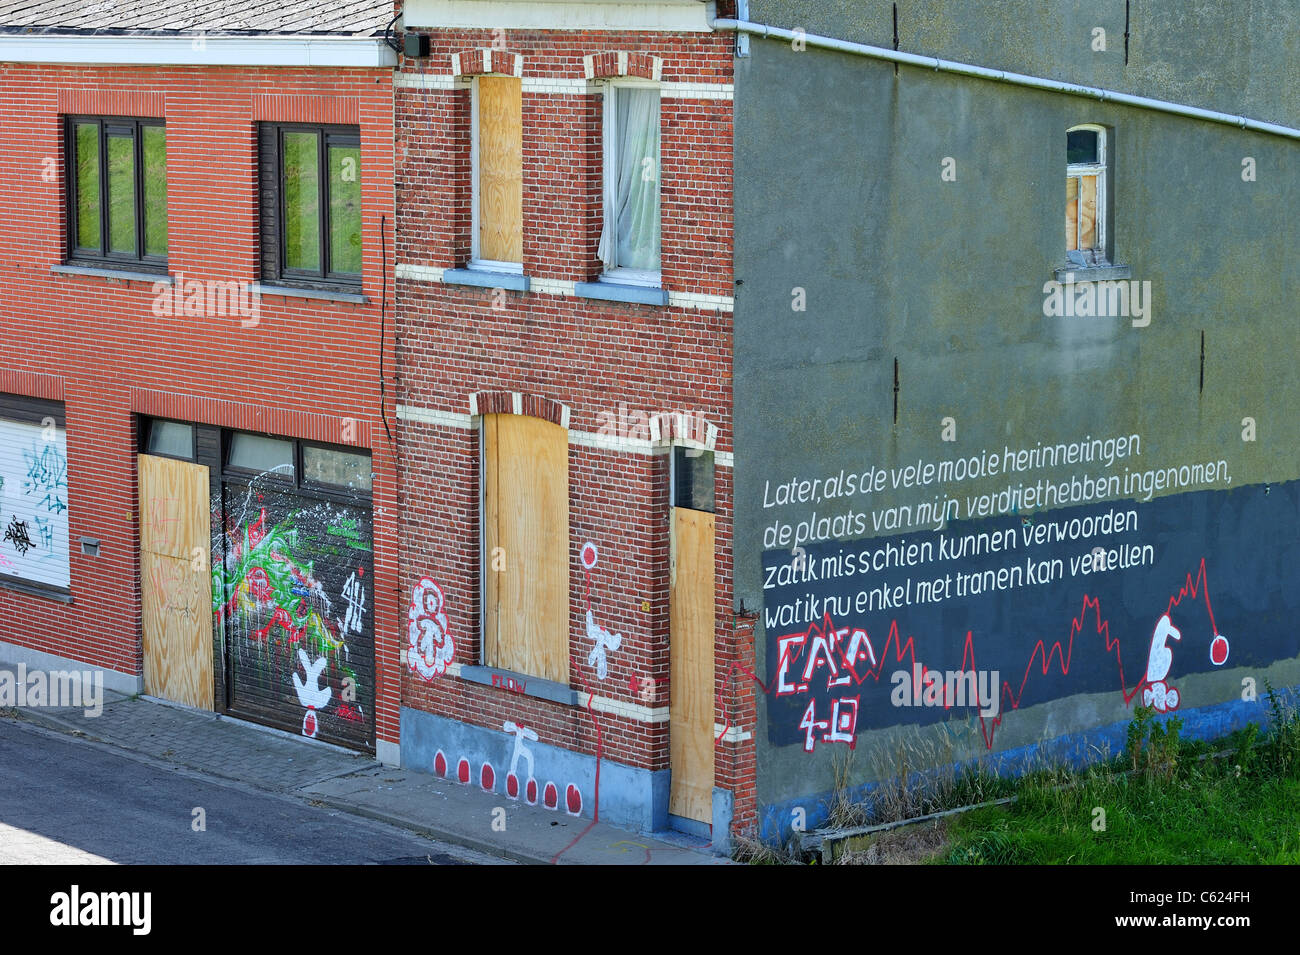 The desolate Flemish polder village Doel along the Antwerp port with barricaded houses covered in graffiti by squatters, - Stock Image